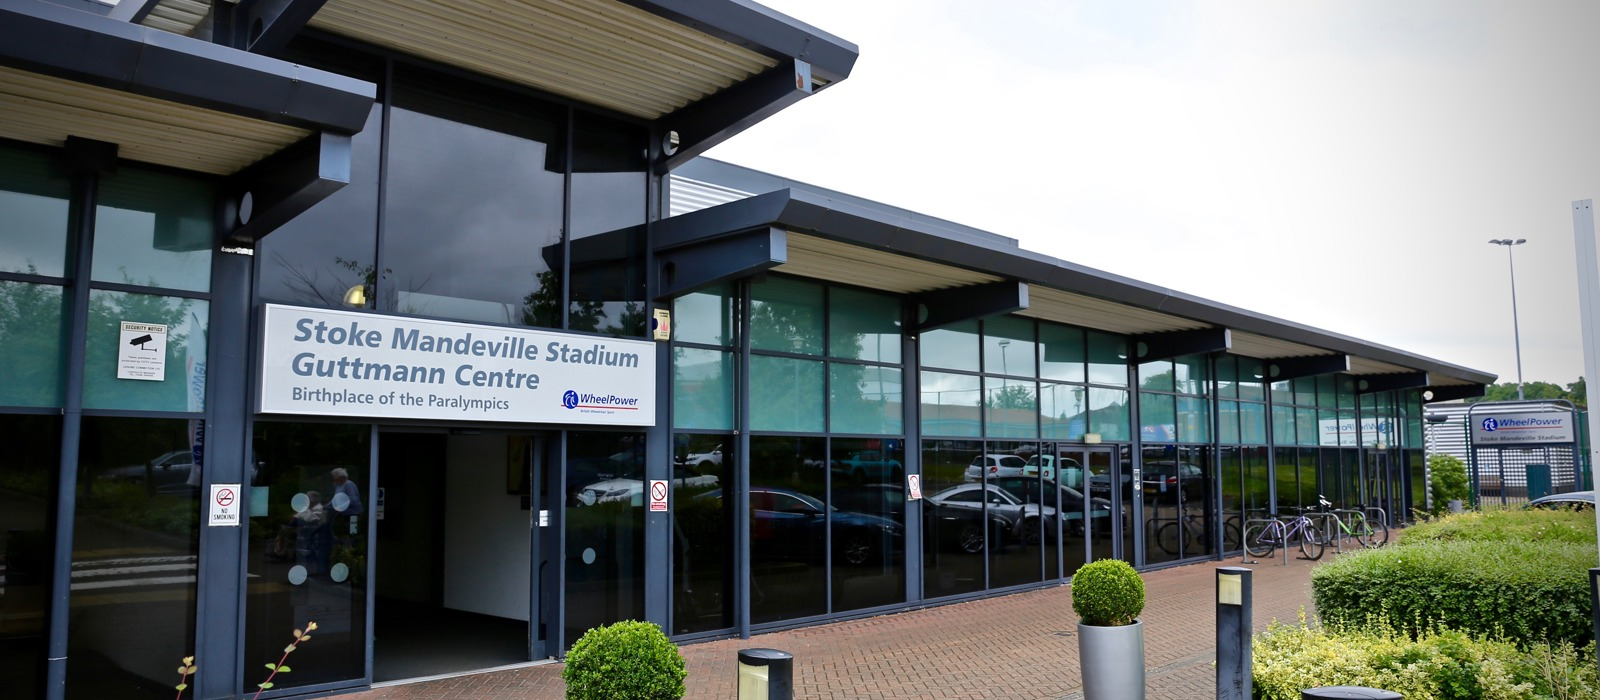 Exterior photo of Stoke Mandeville Stadium